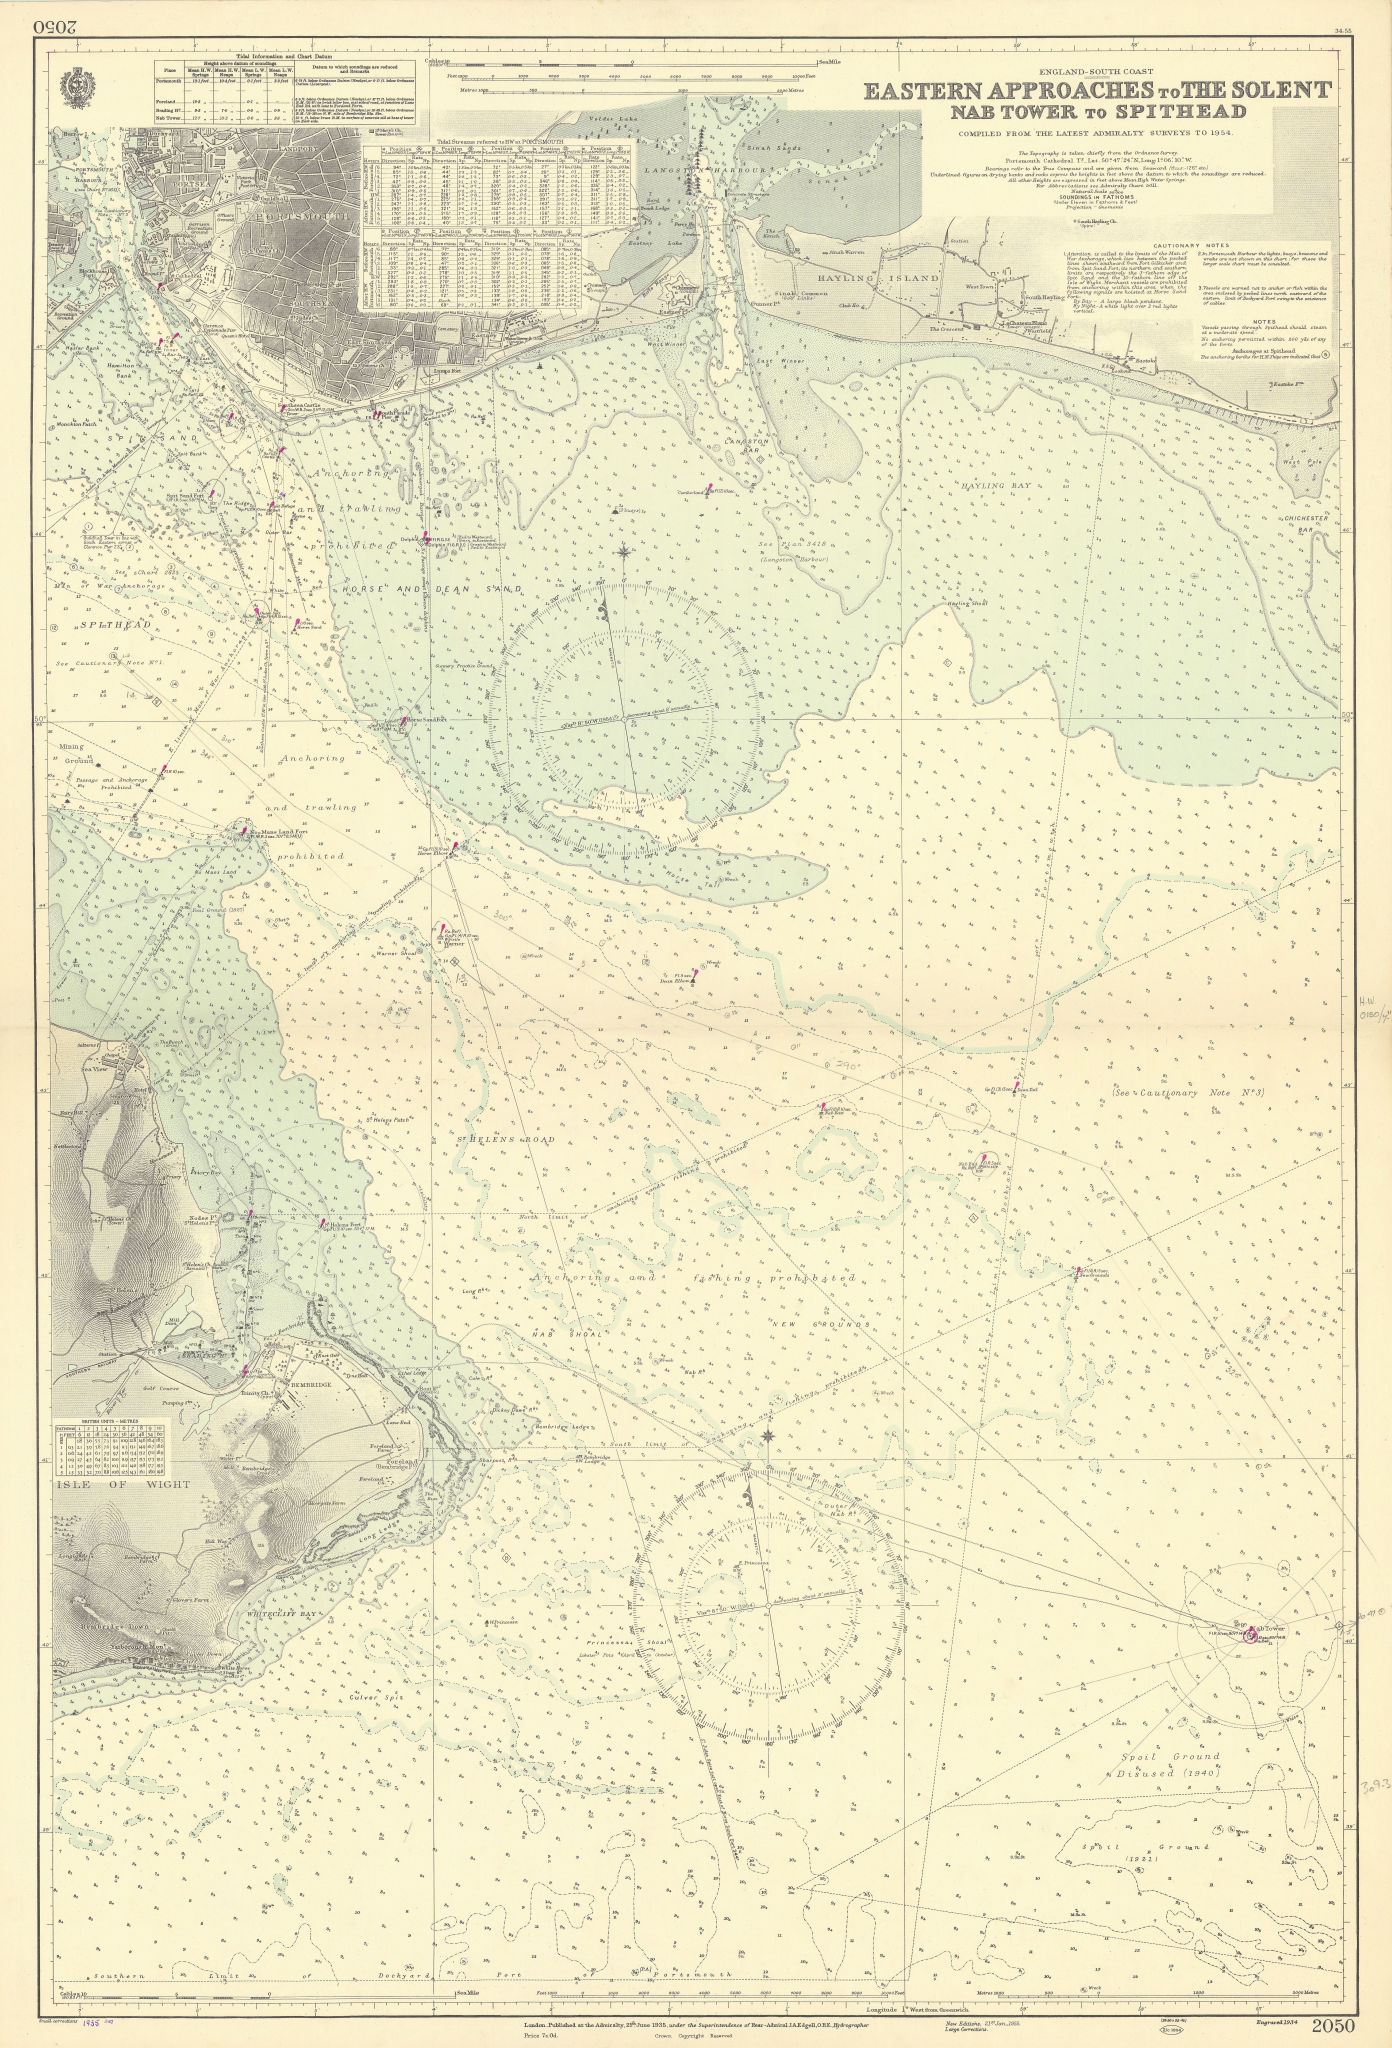 Solent eastern approach Spithead Portsmouth ADMIRALTY sea chart 1935 (1955) map